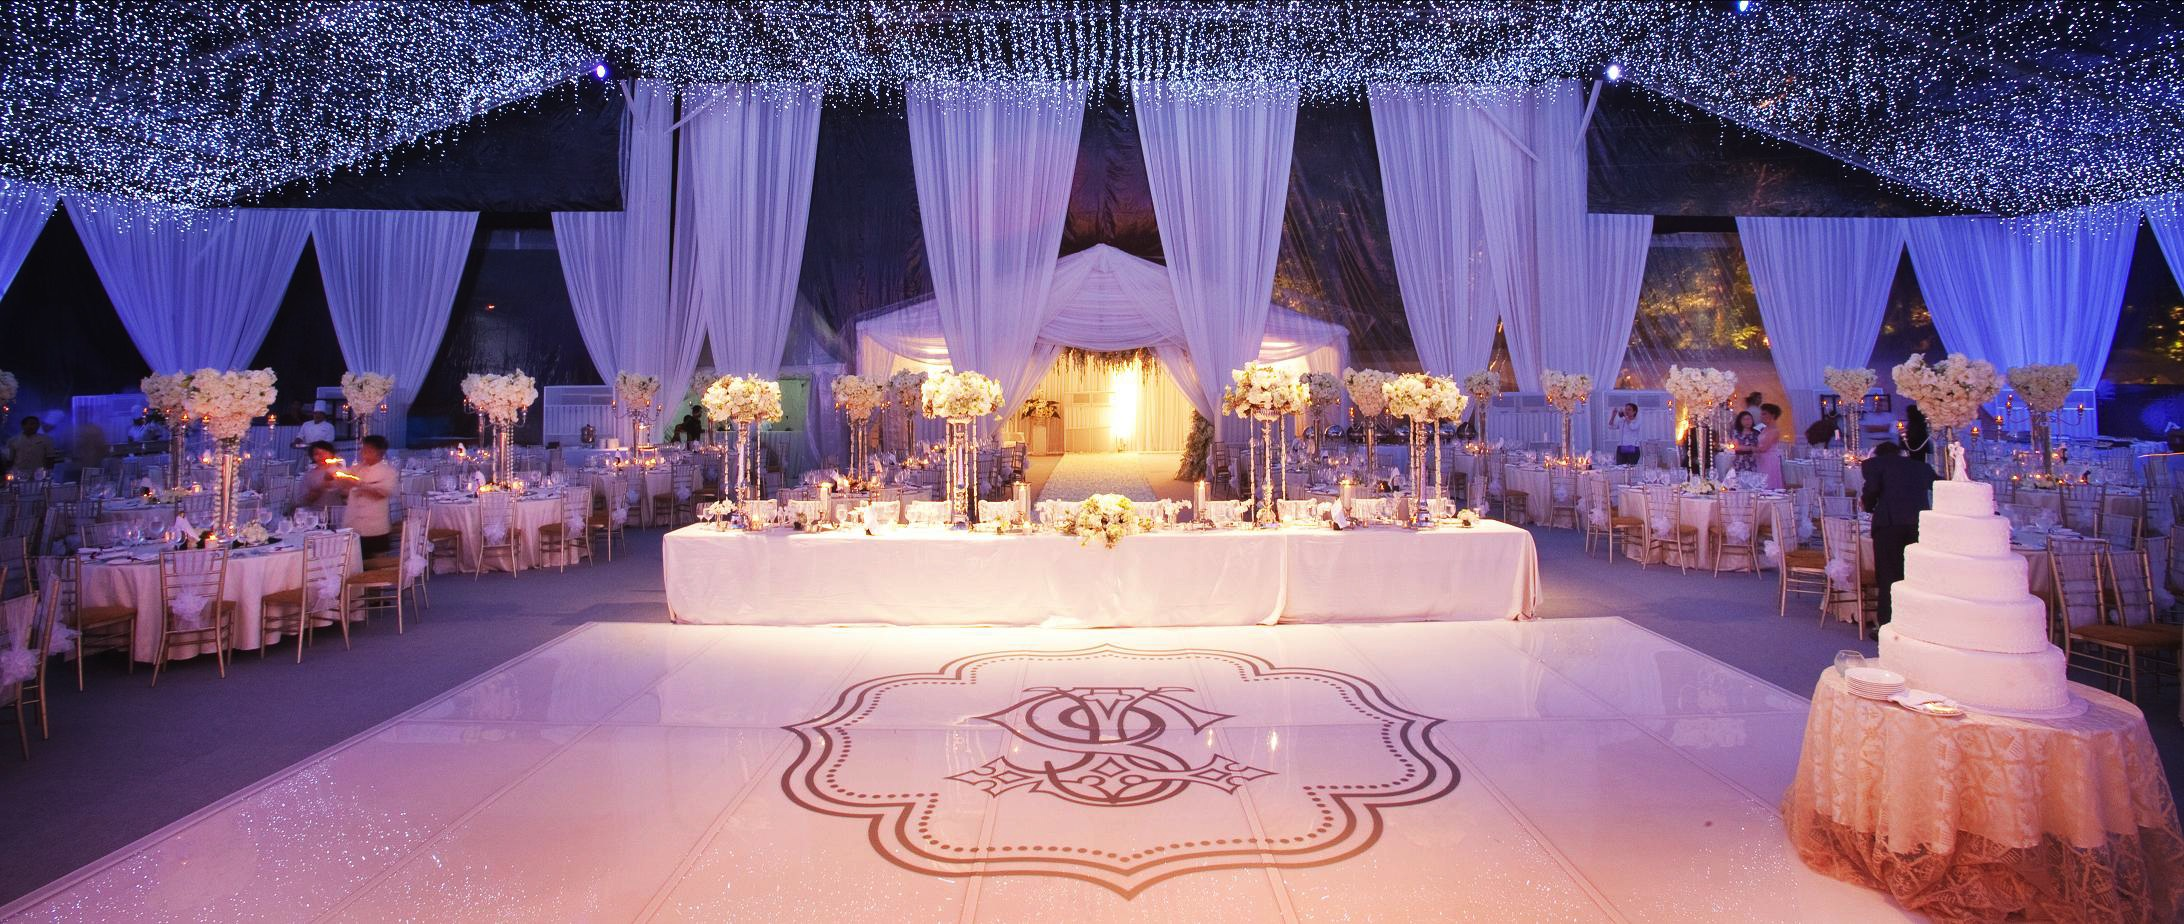 Dining under a thousand stars by flora lines decoration bridestory junglespirit Image collections